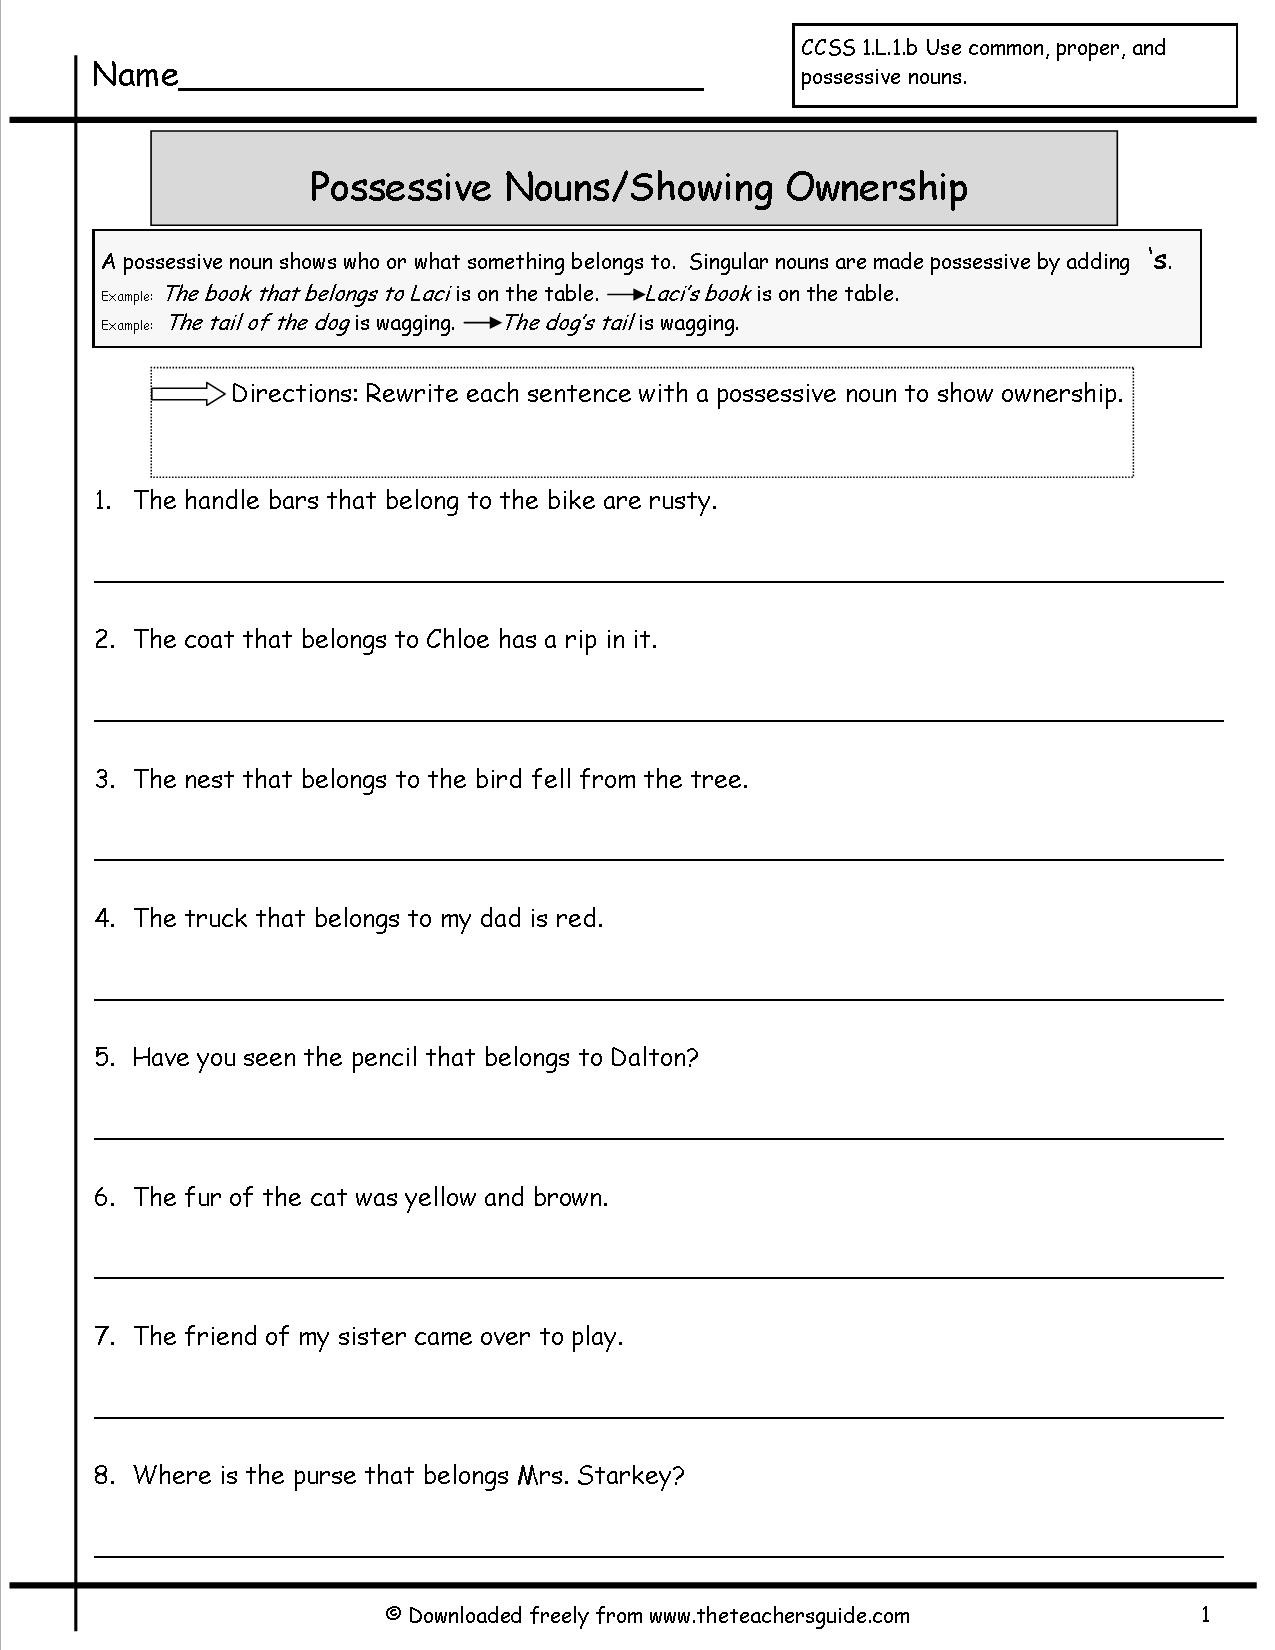 Possessive Pronouns Worksheet 3rd Grade Possessive Pronouns Worksheets 4th Grade